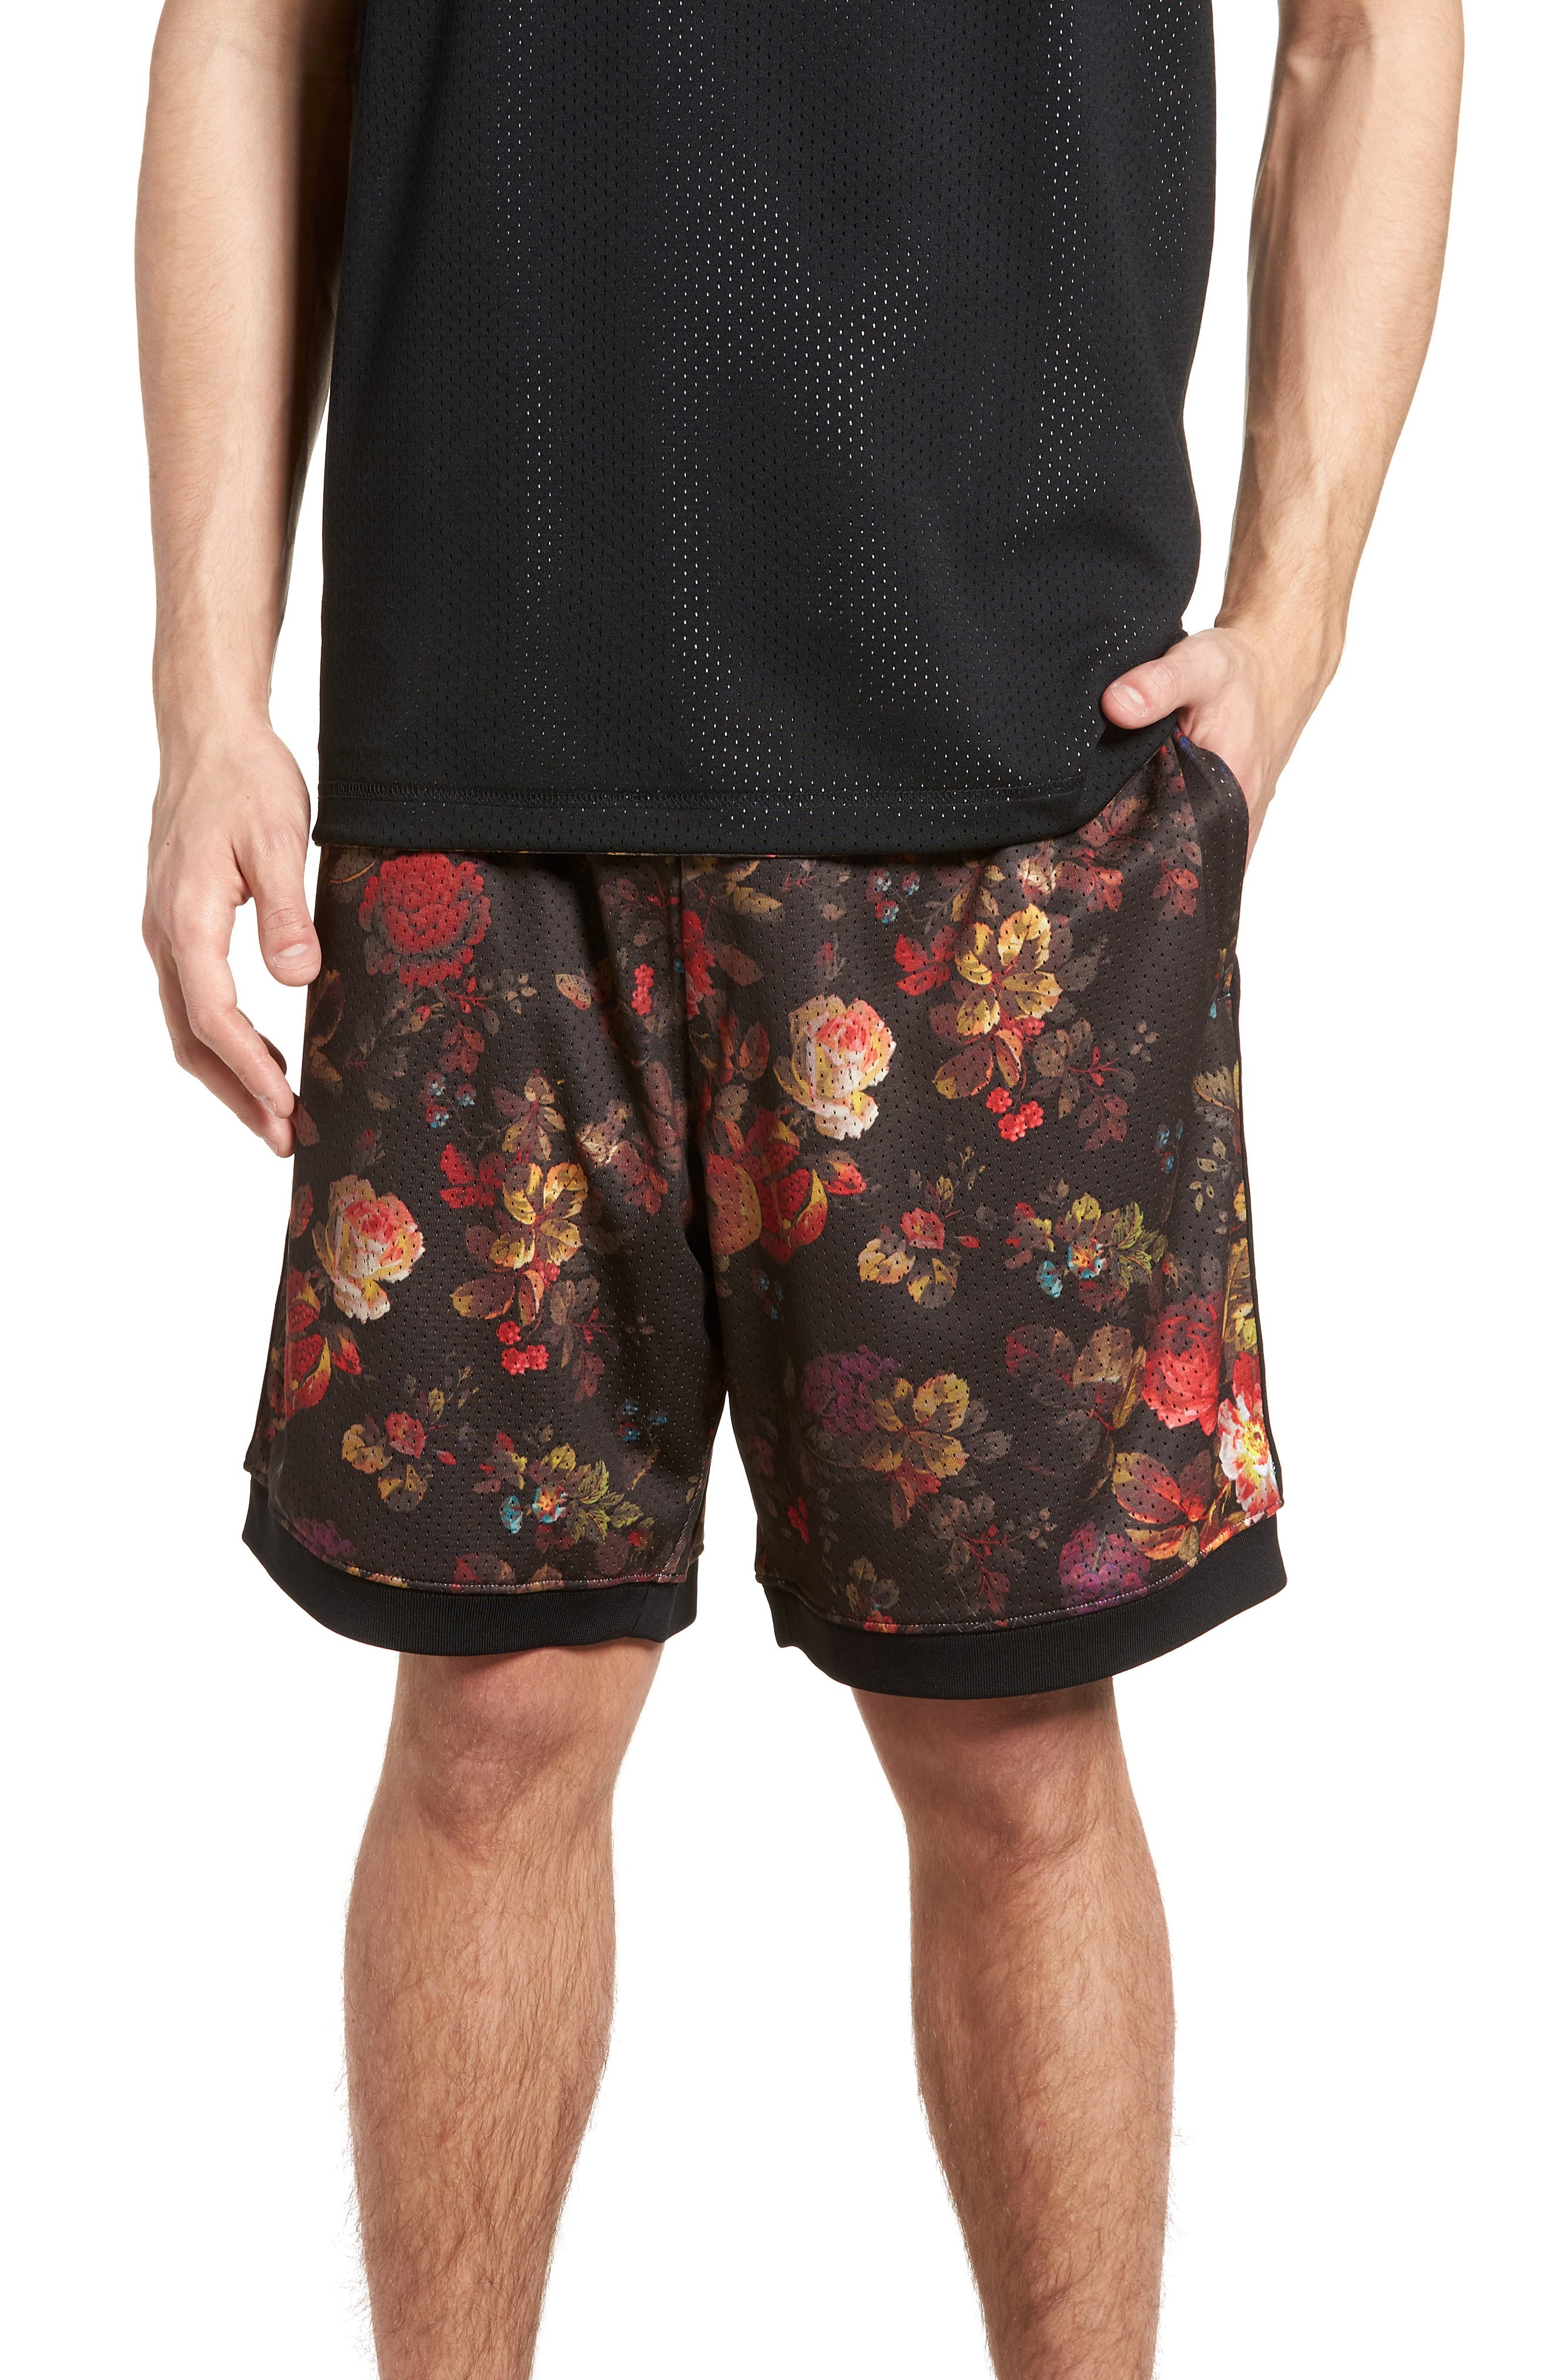 DRY FLORAL SHORTS